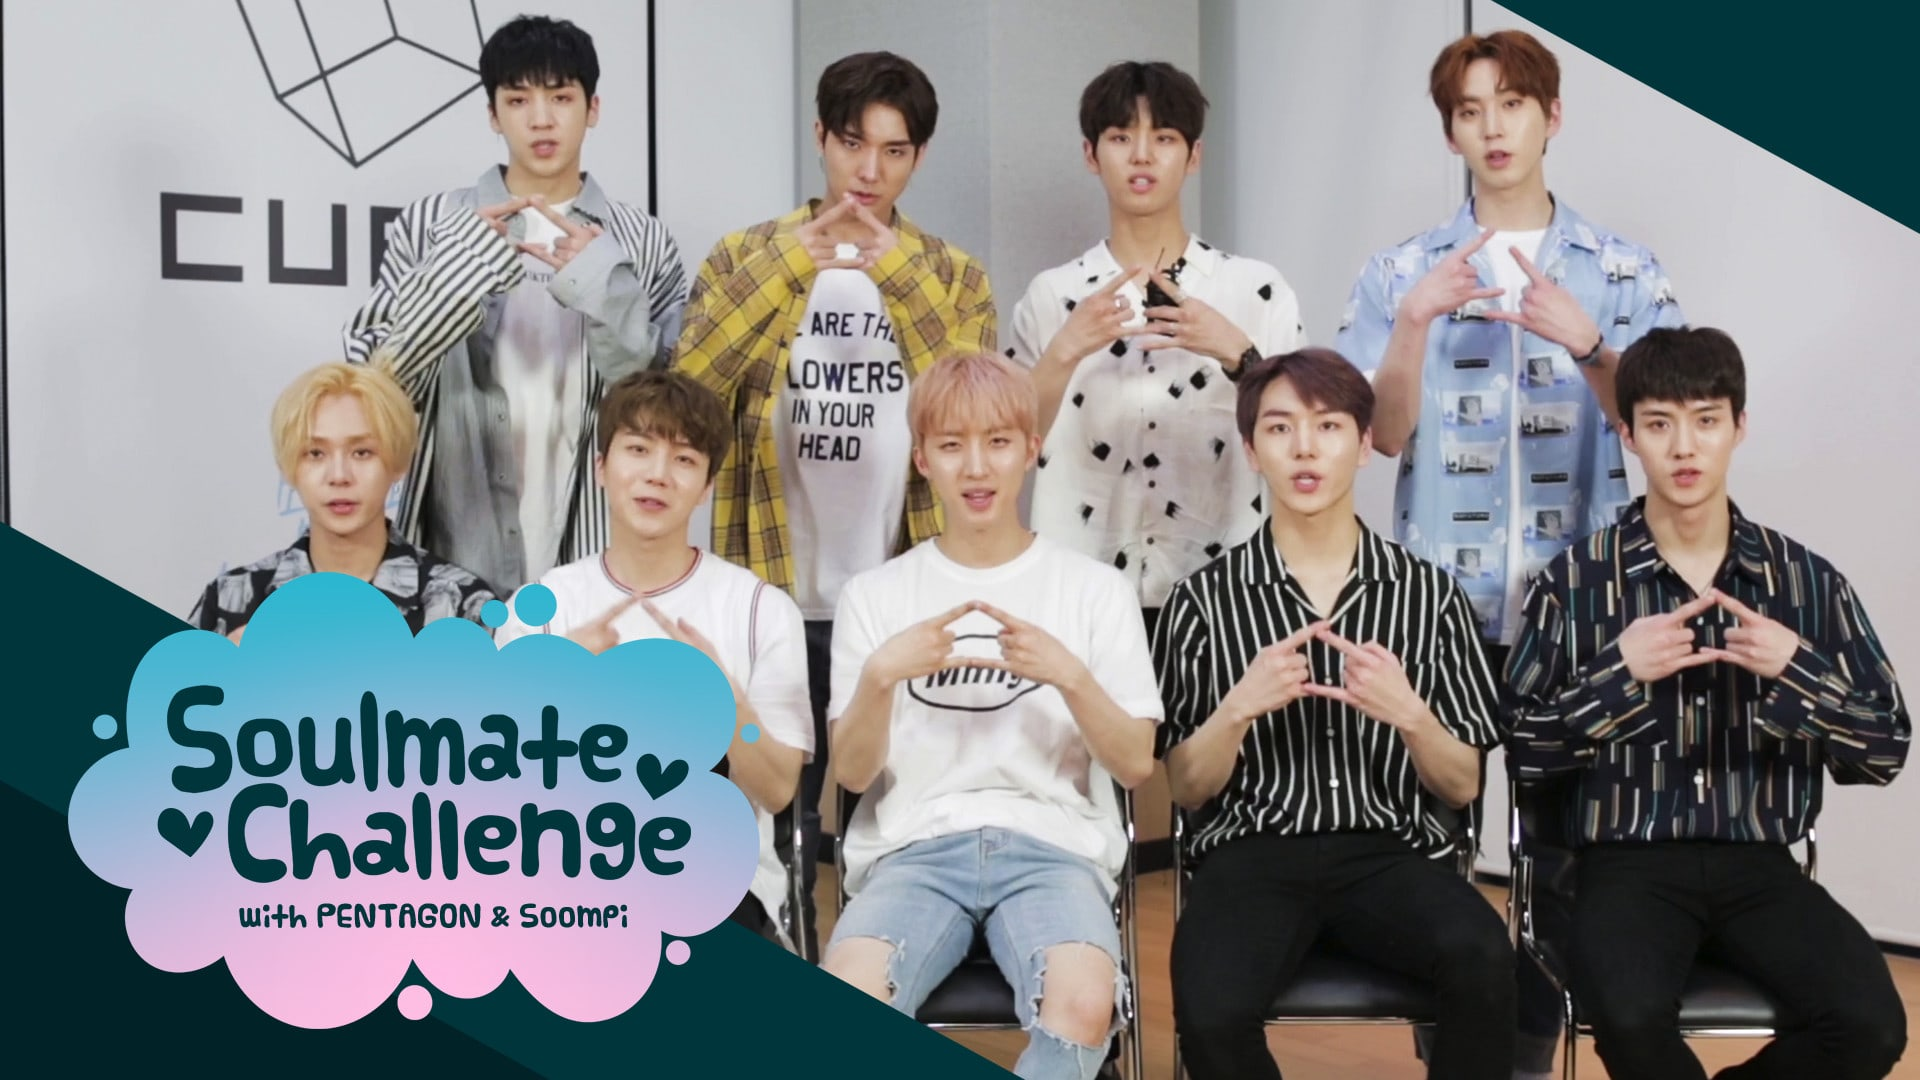 QUIZ: PENTAGON Takes On The Soulmate Challenge Who Is Meant For You?